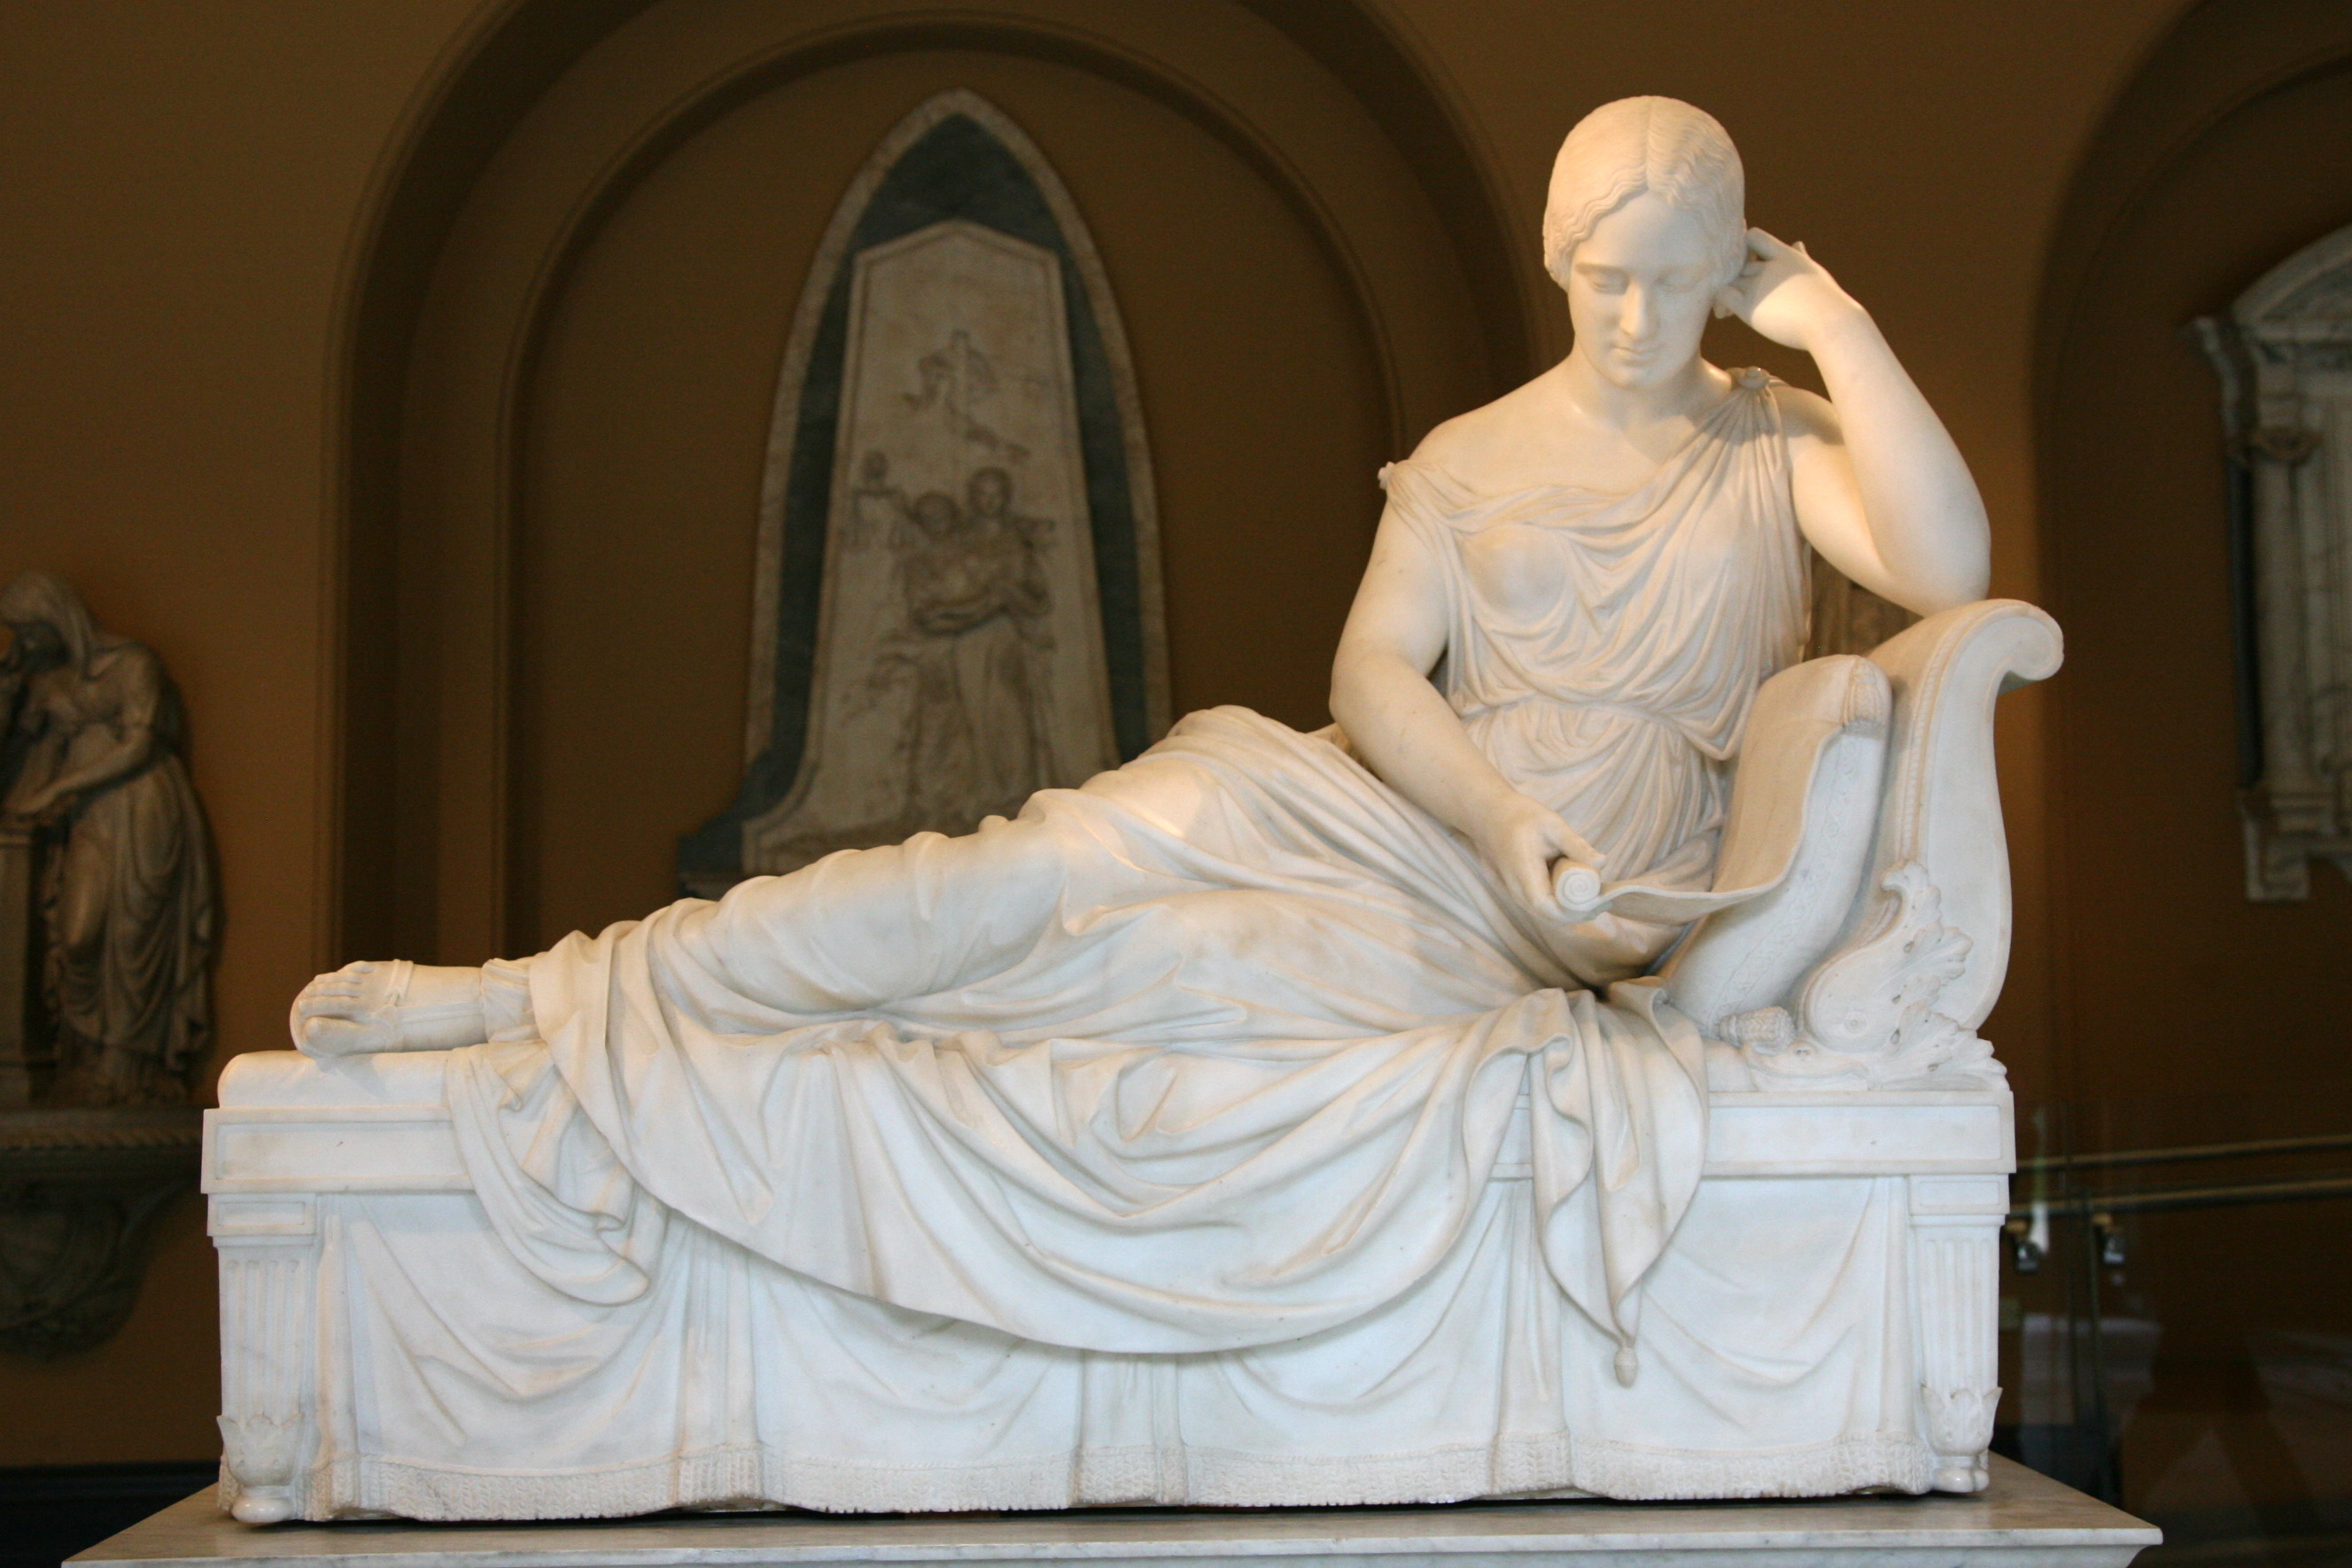 http://upload.wikimedia.org/wikipedia/commons/1/16/London-Victoria_and_Albert_Museum-Sculpture-02.jpg